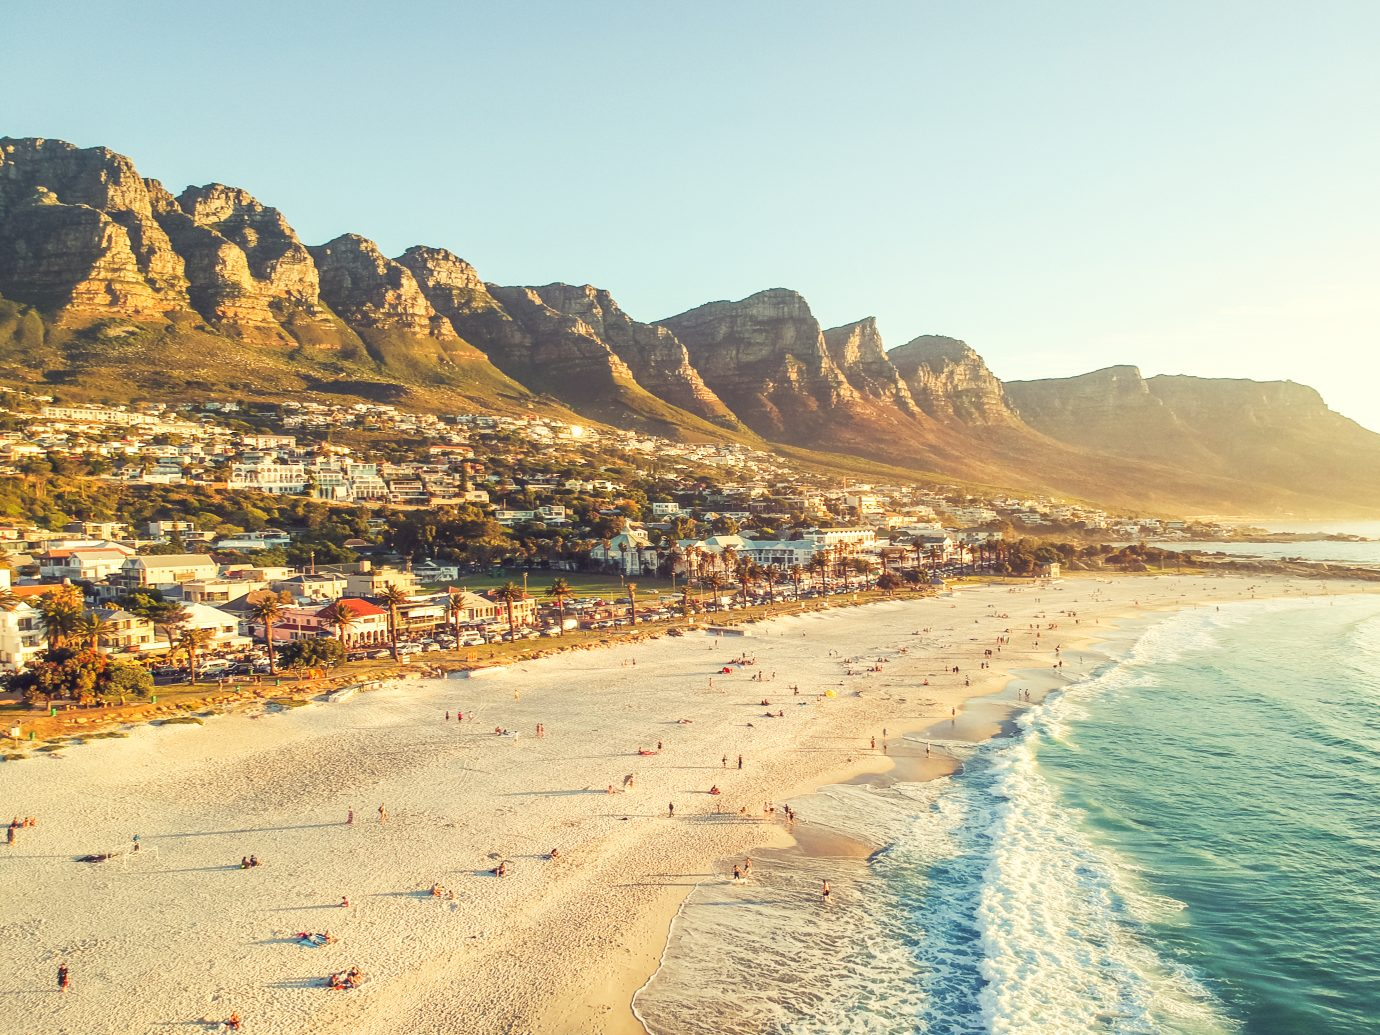 Camps Bay, of Cape Town, Western Cape, South Africa.